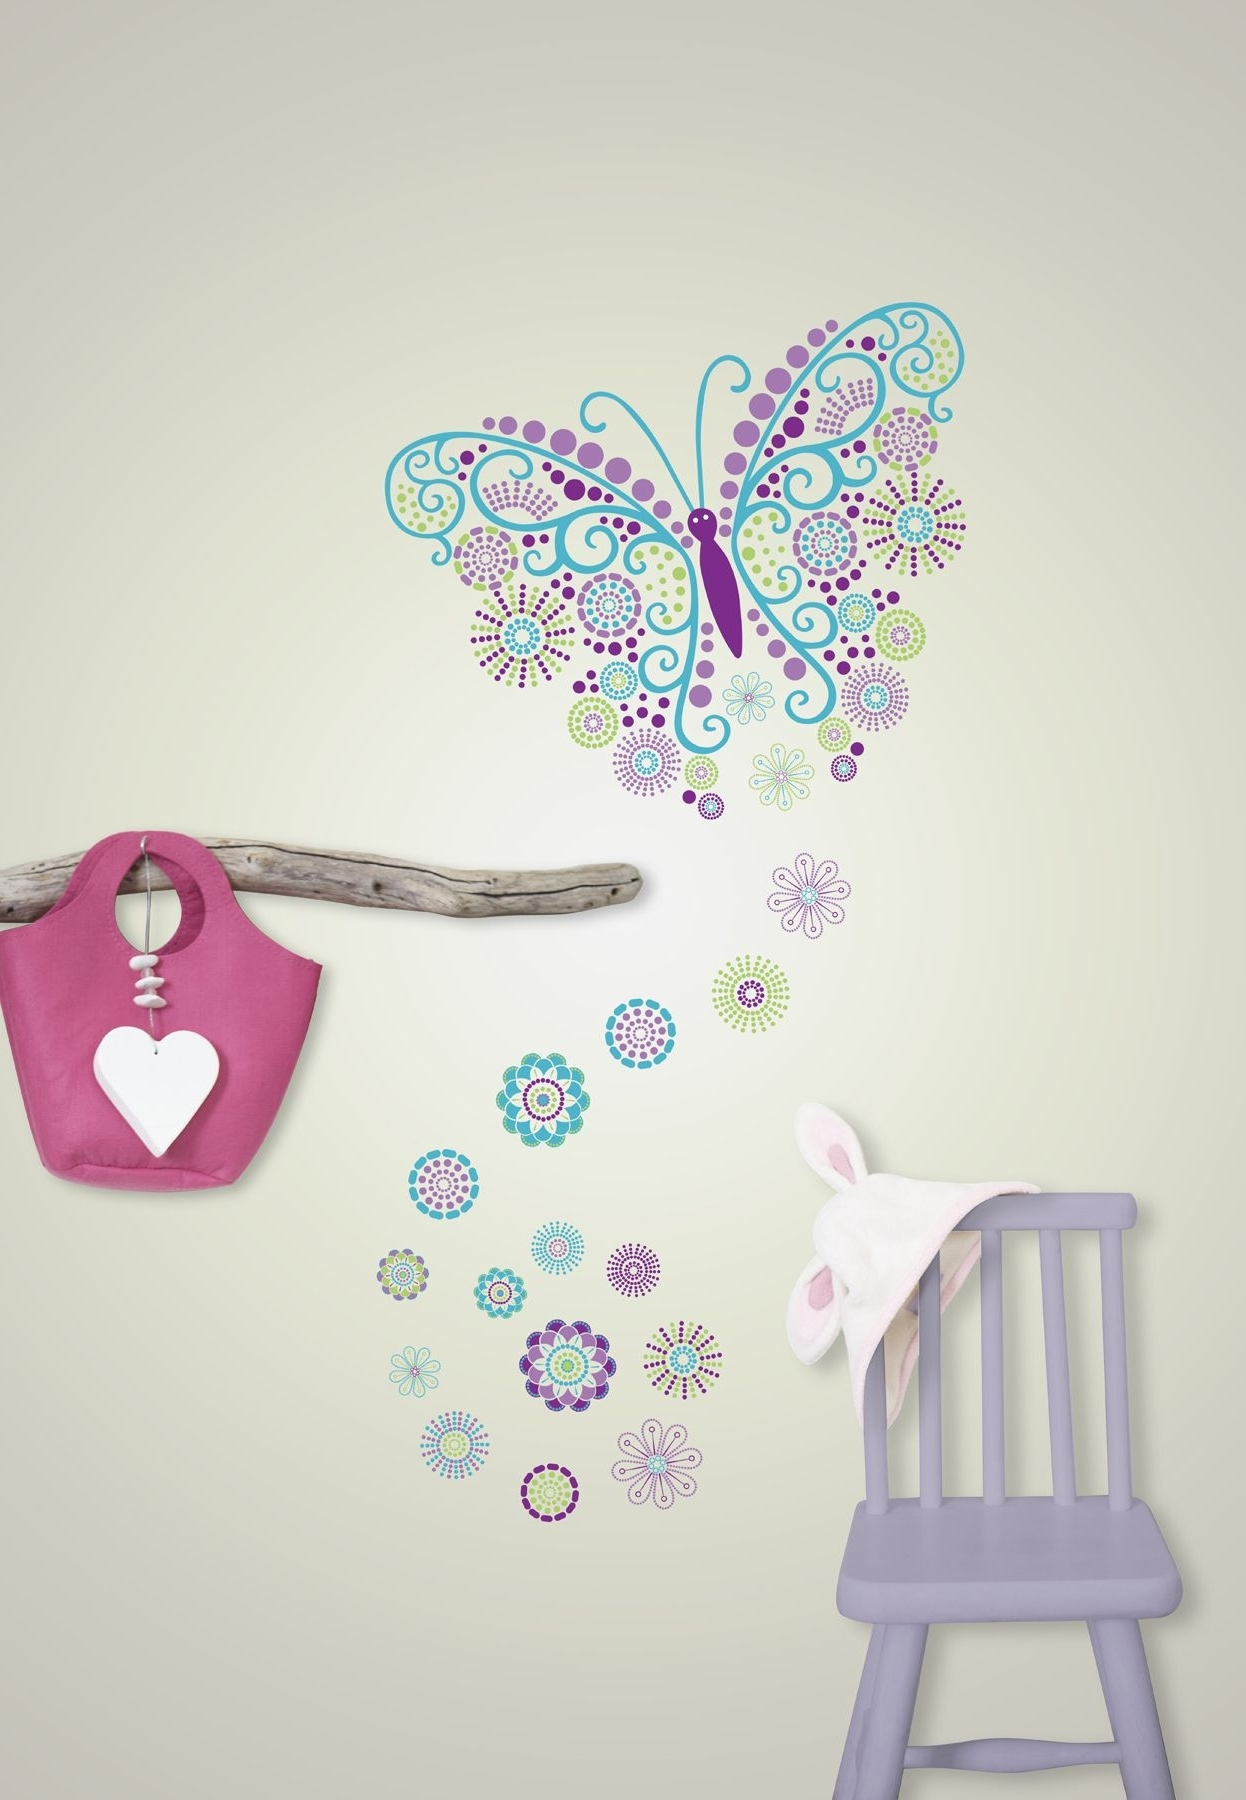 Gorgeous Butterfly Wall Art Sticker Kit In Widely Used Butterfly Wall Art (Gallery 10 of 15)